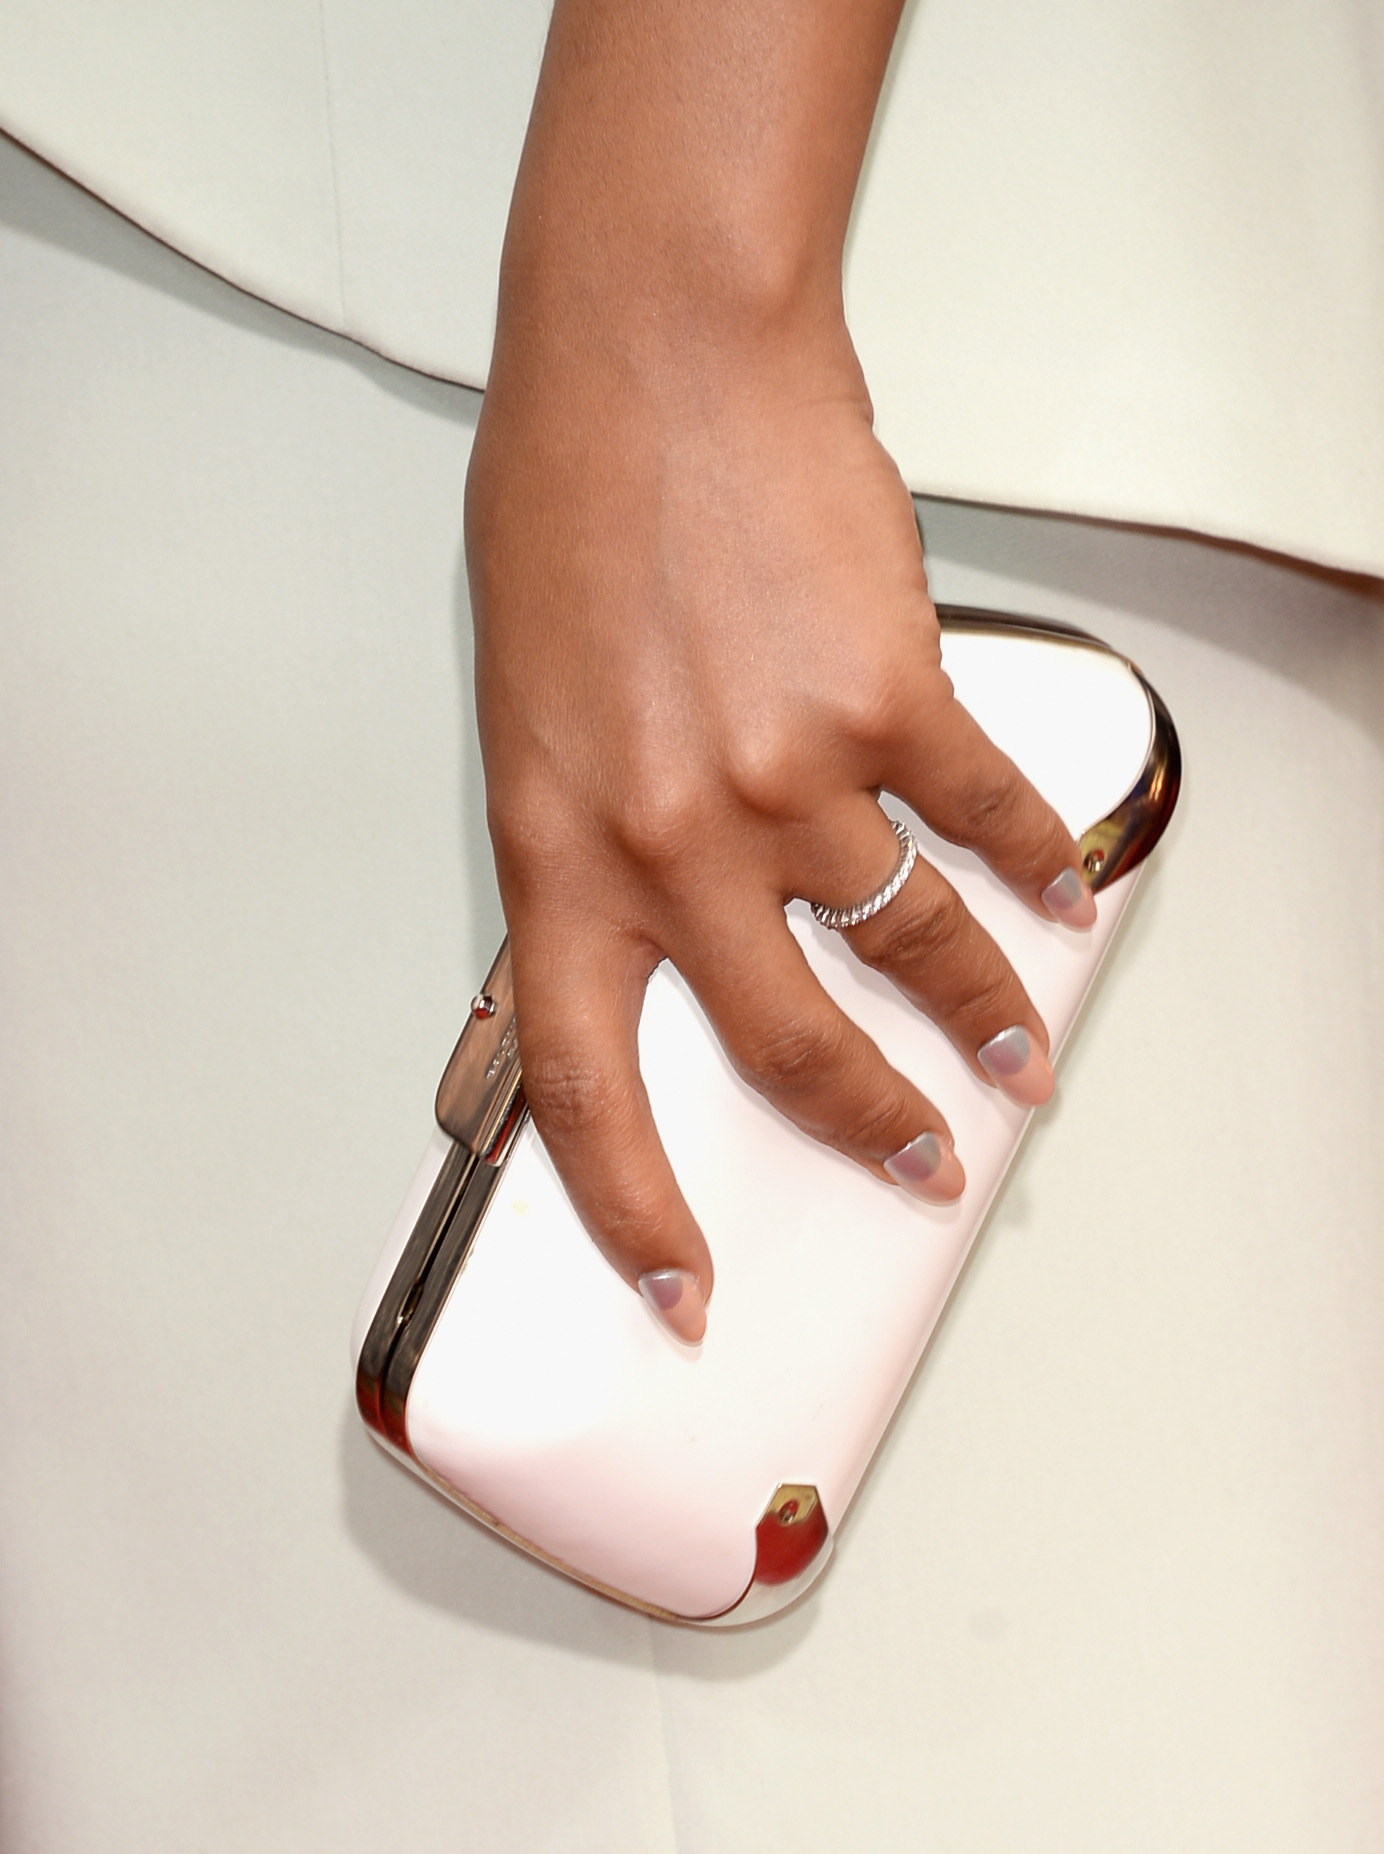 Kerry Washington kept it understated with a white Balenciaga clutch.